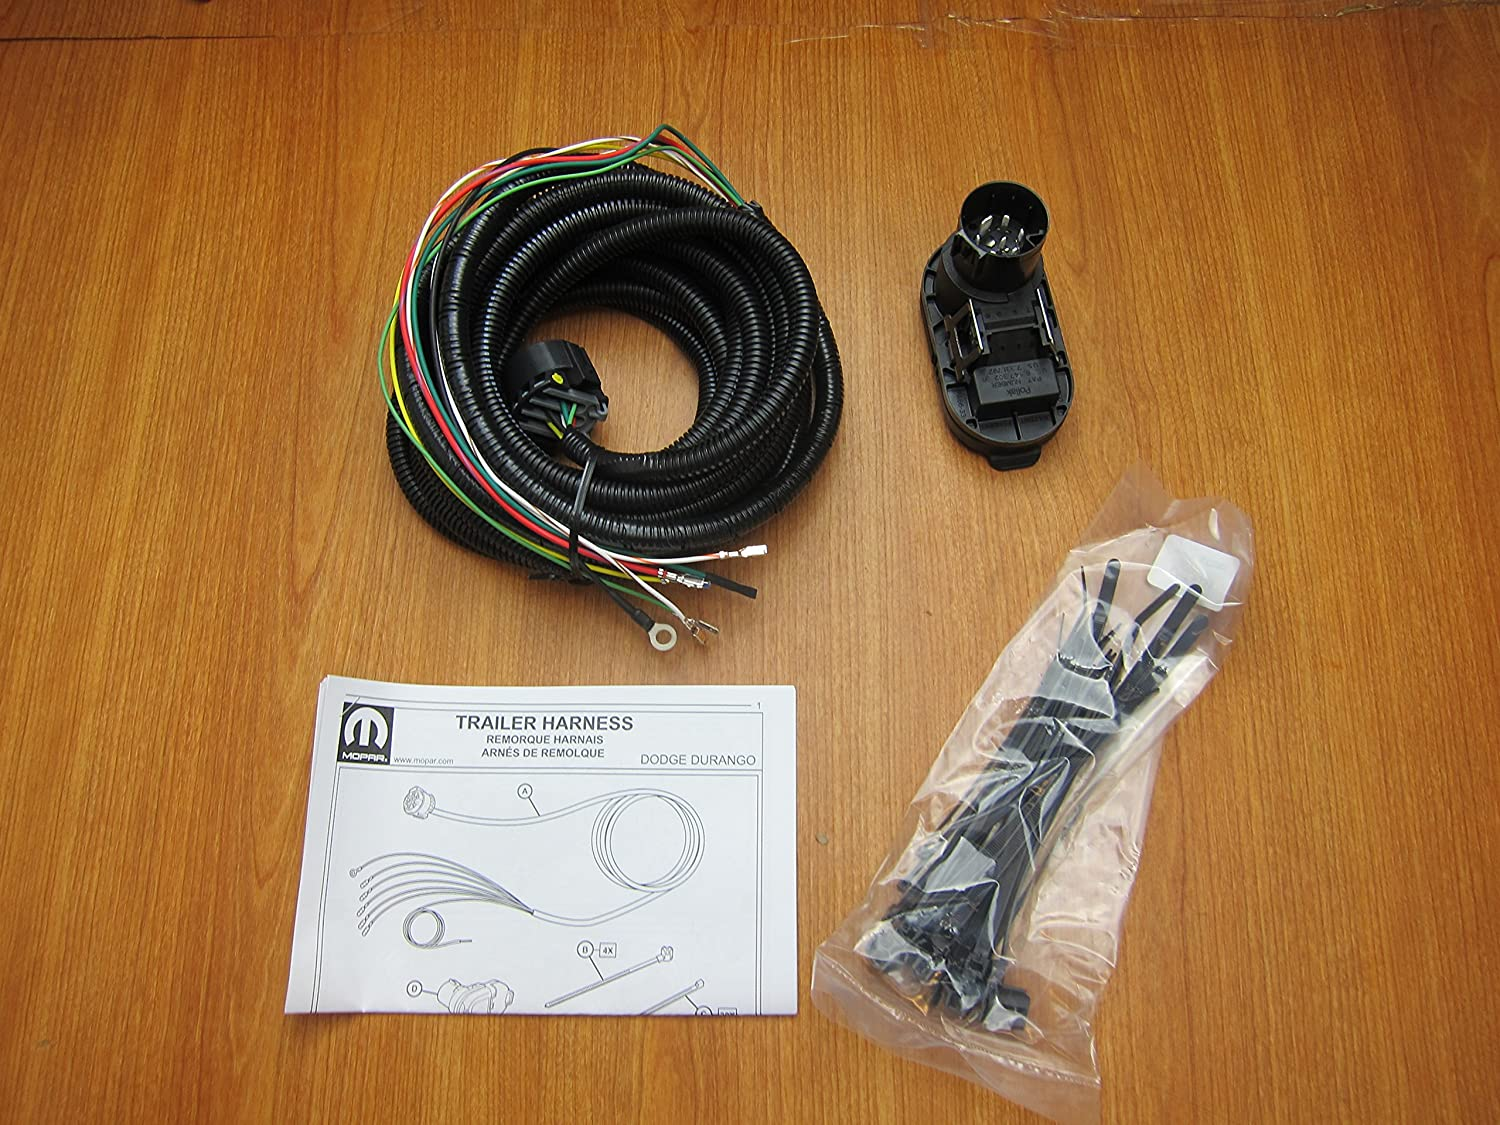 Amazon.com: Dodge Durango Trailer Tow Hitch Wiring Harness ... on